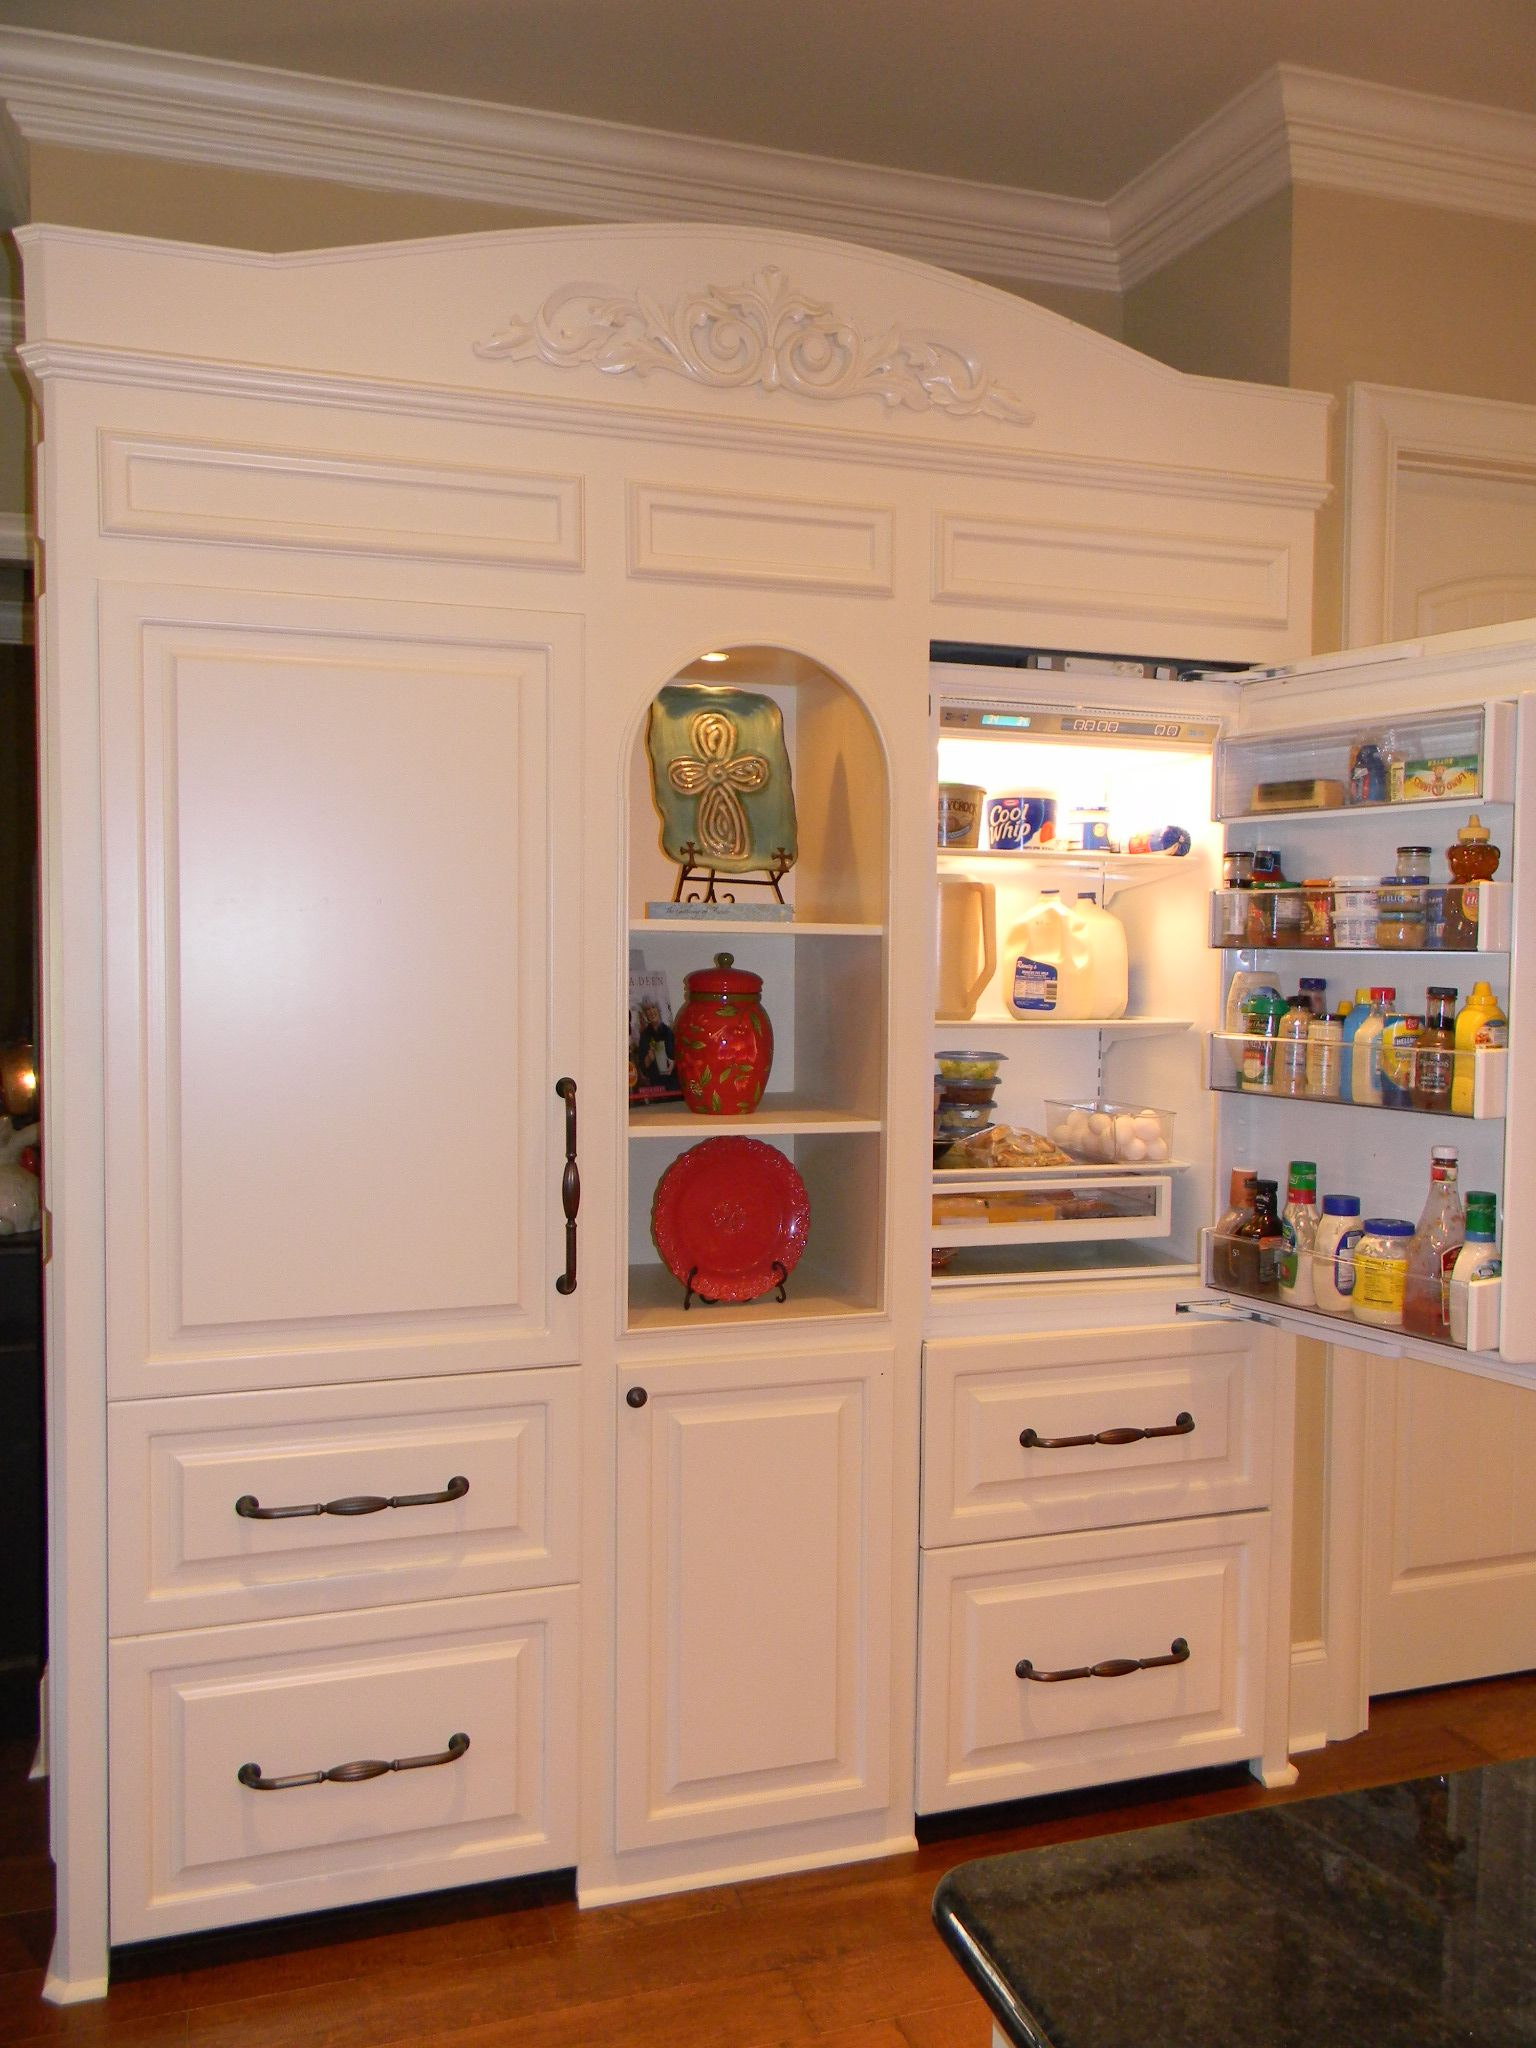 Custom Fridge Built To Look Like Furniture Sub Zero Separate Units